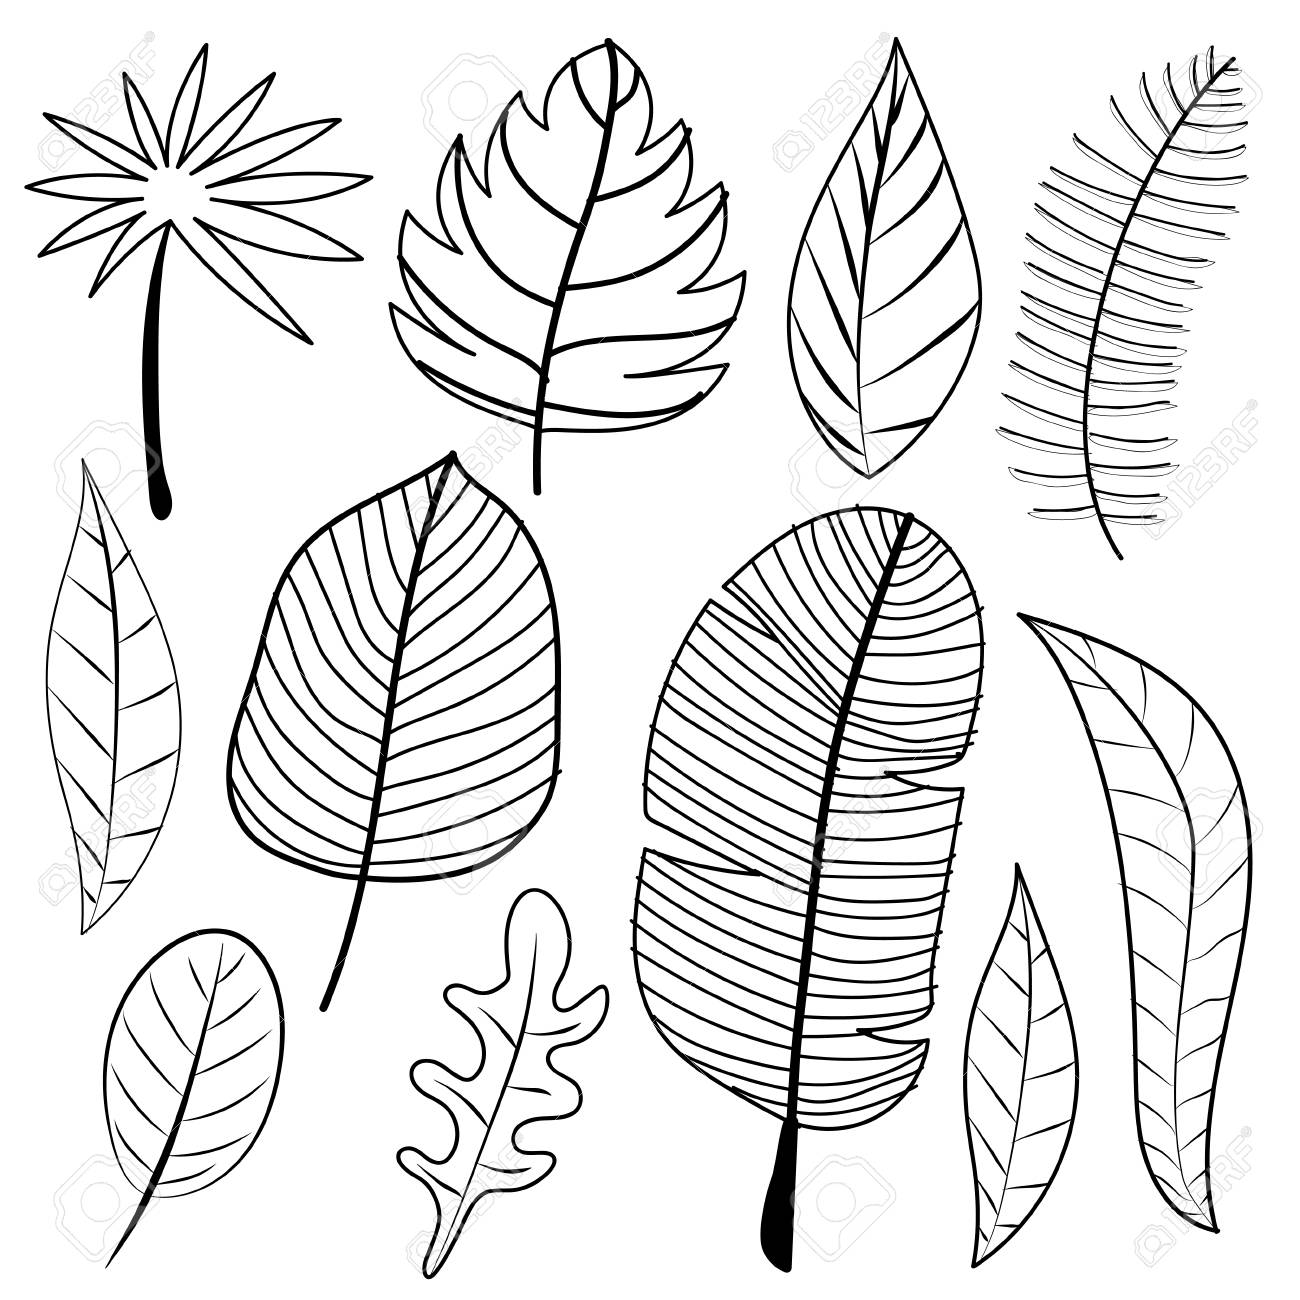 Leaves Doodle Vector Set Royalty Free Cliparts Vectors And Stock Illustration Image 104357702